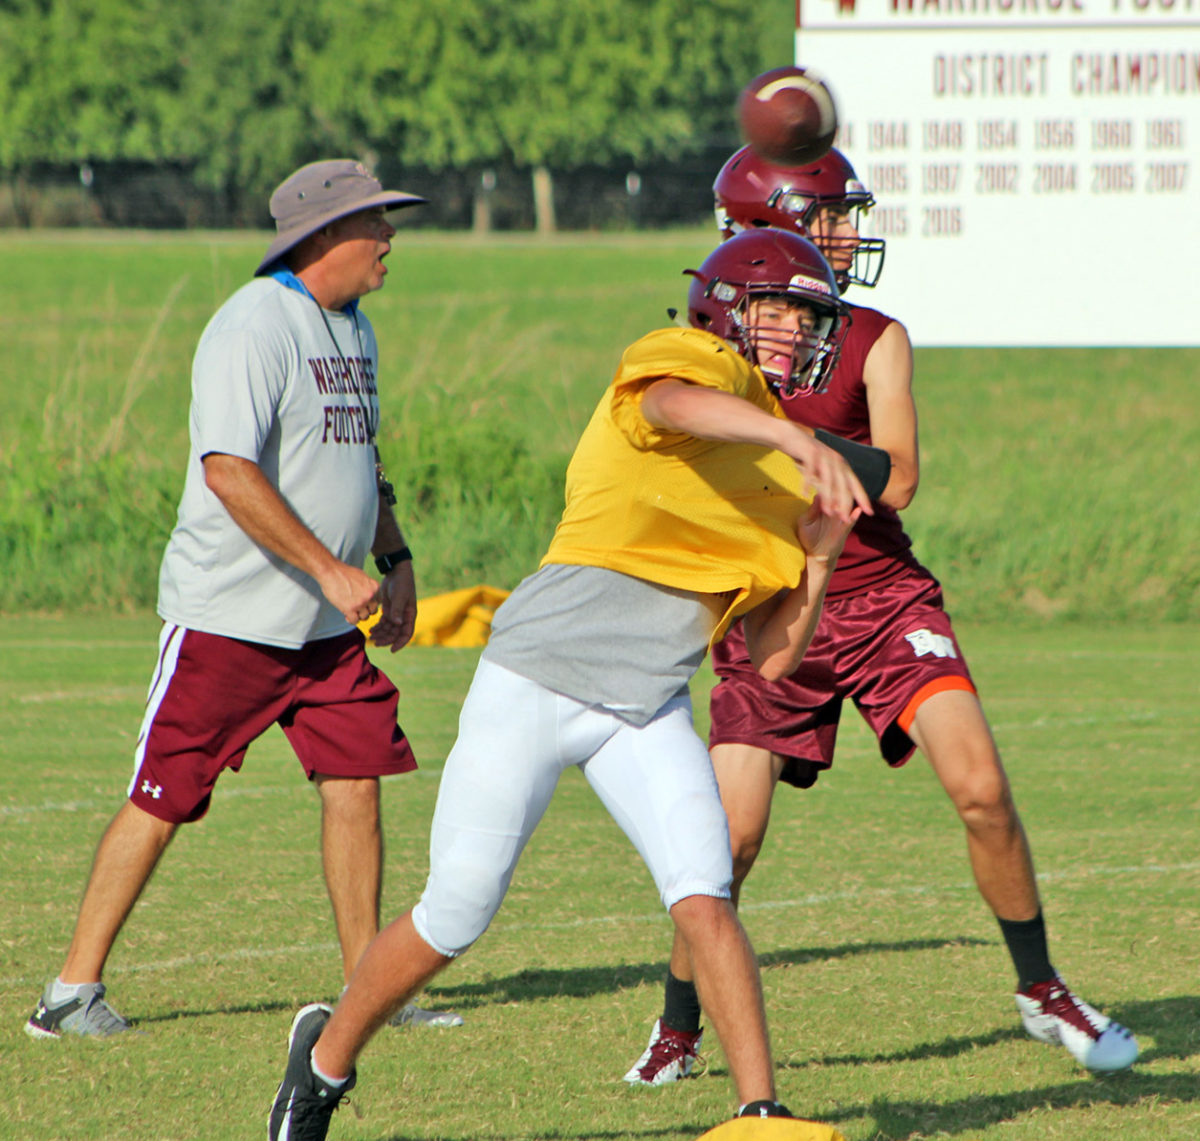 Warhorses progressing during two-a-days